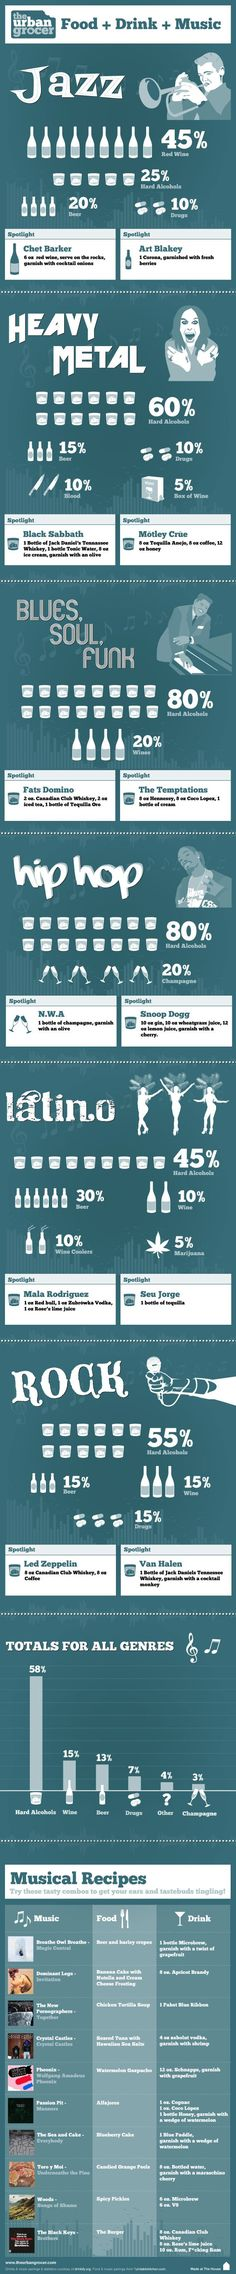 Check out this amazing #infographic:  (Food + Drink + Music)